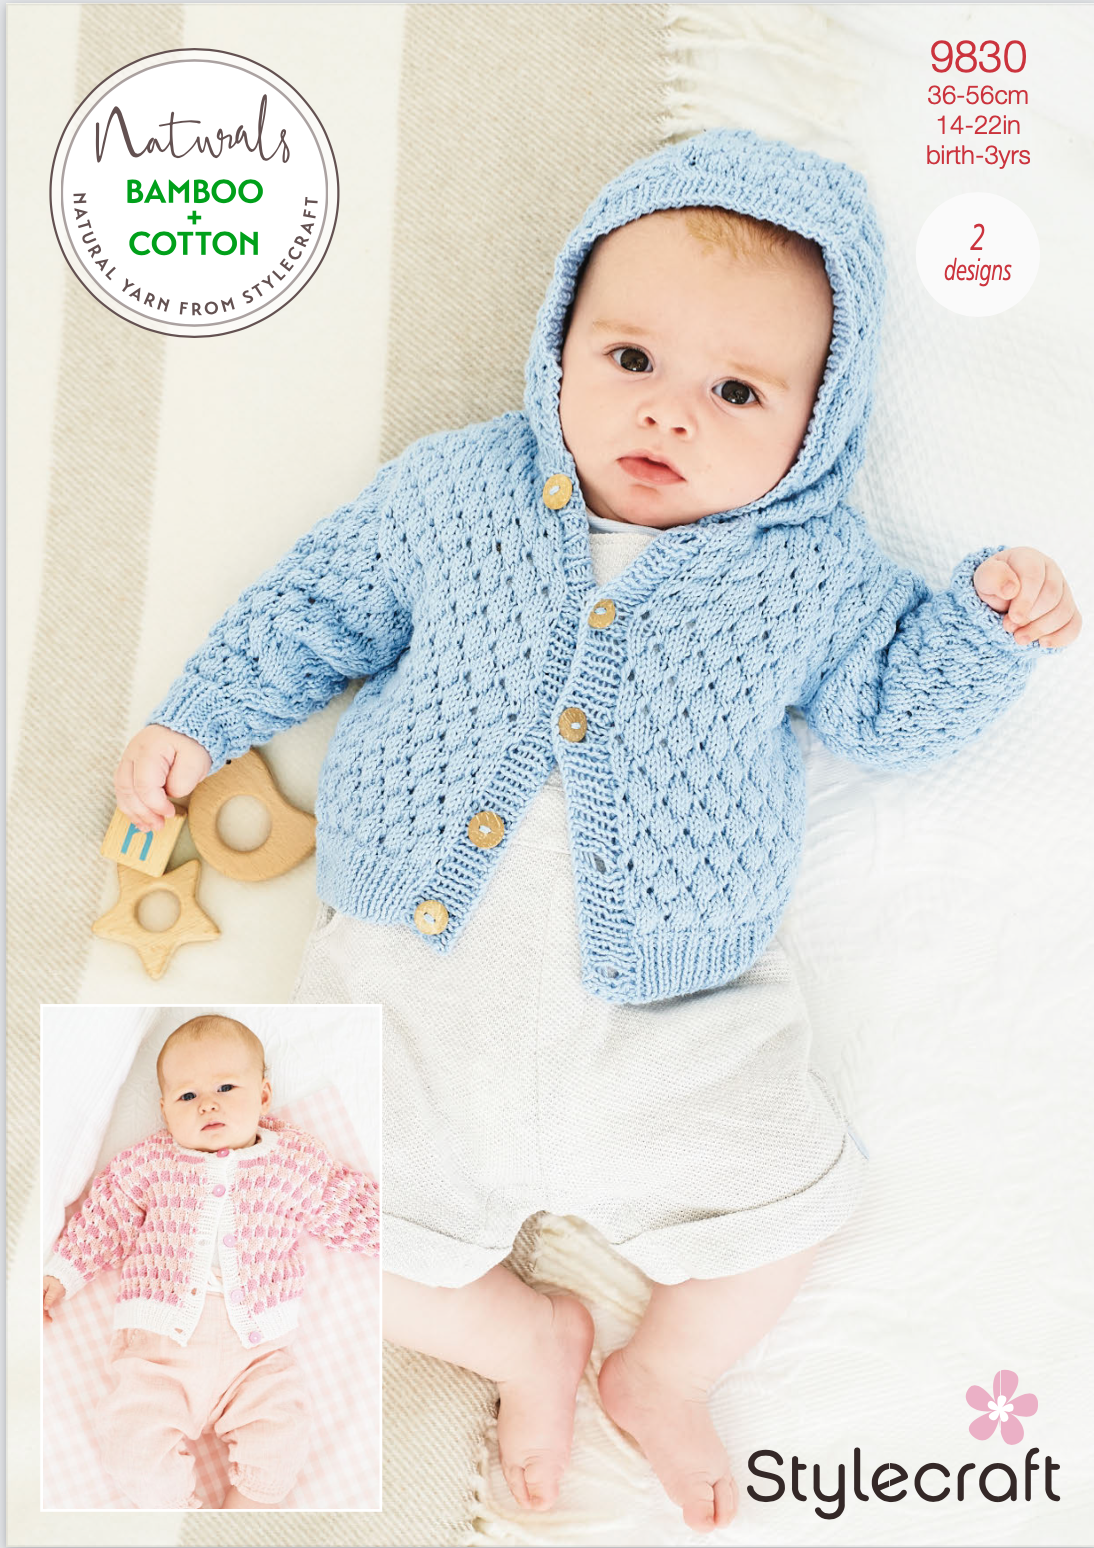 Stylecraft Pattern Naturals Bamboo+Cotton 9830 (download) product image